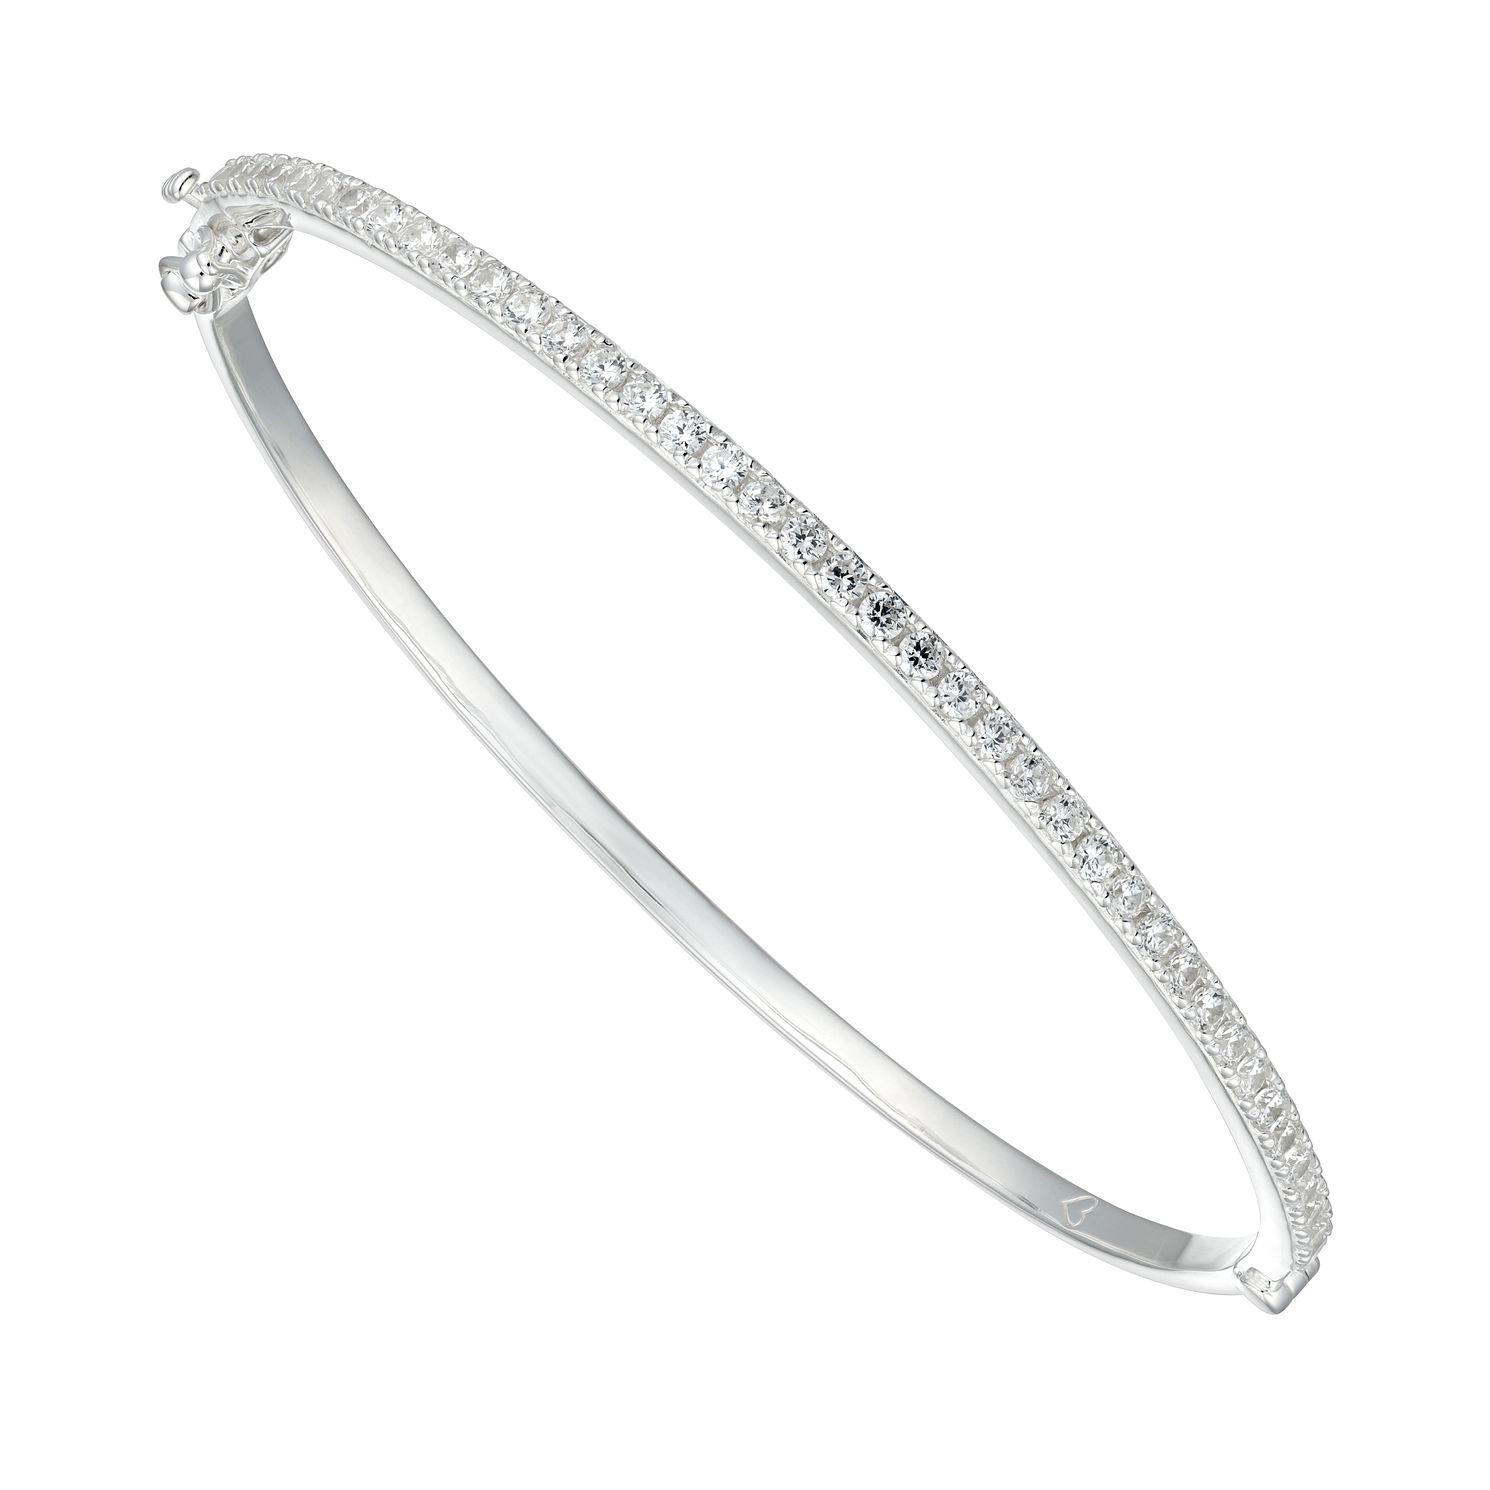 Silver Cubic Zirconia Hinged Bangle Bracelet - Product number 4843231